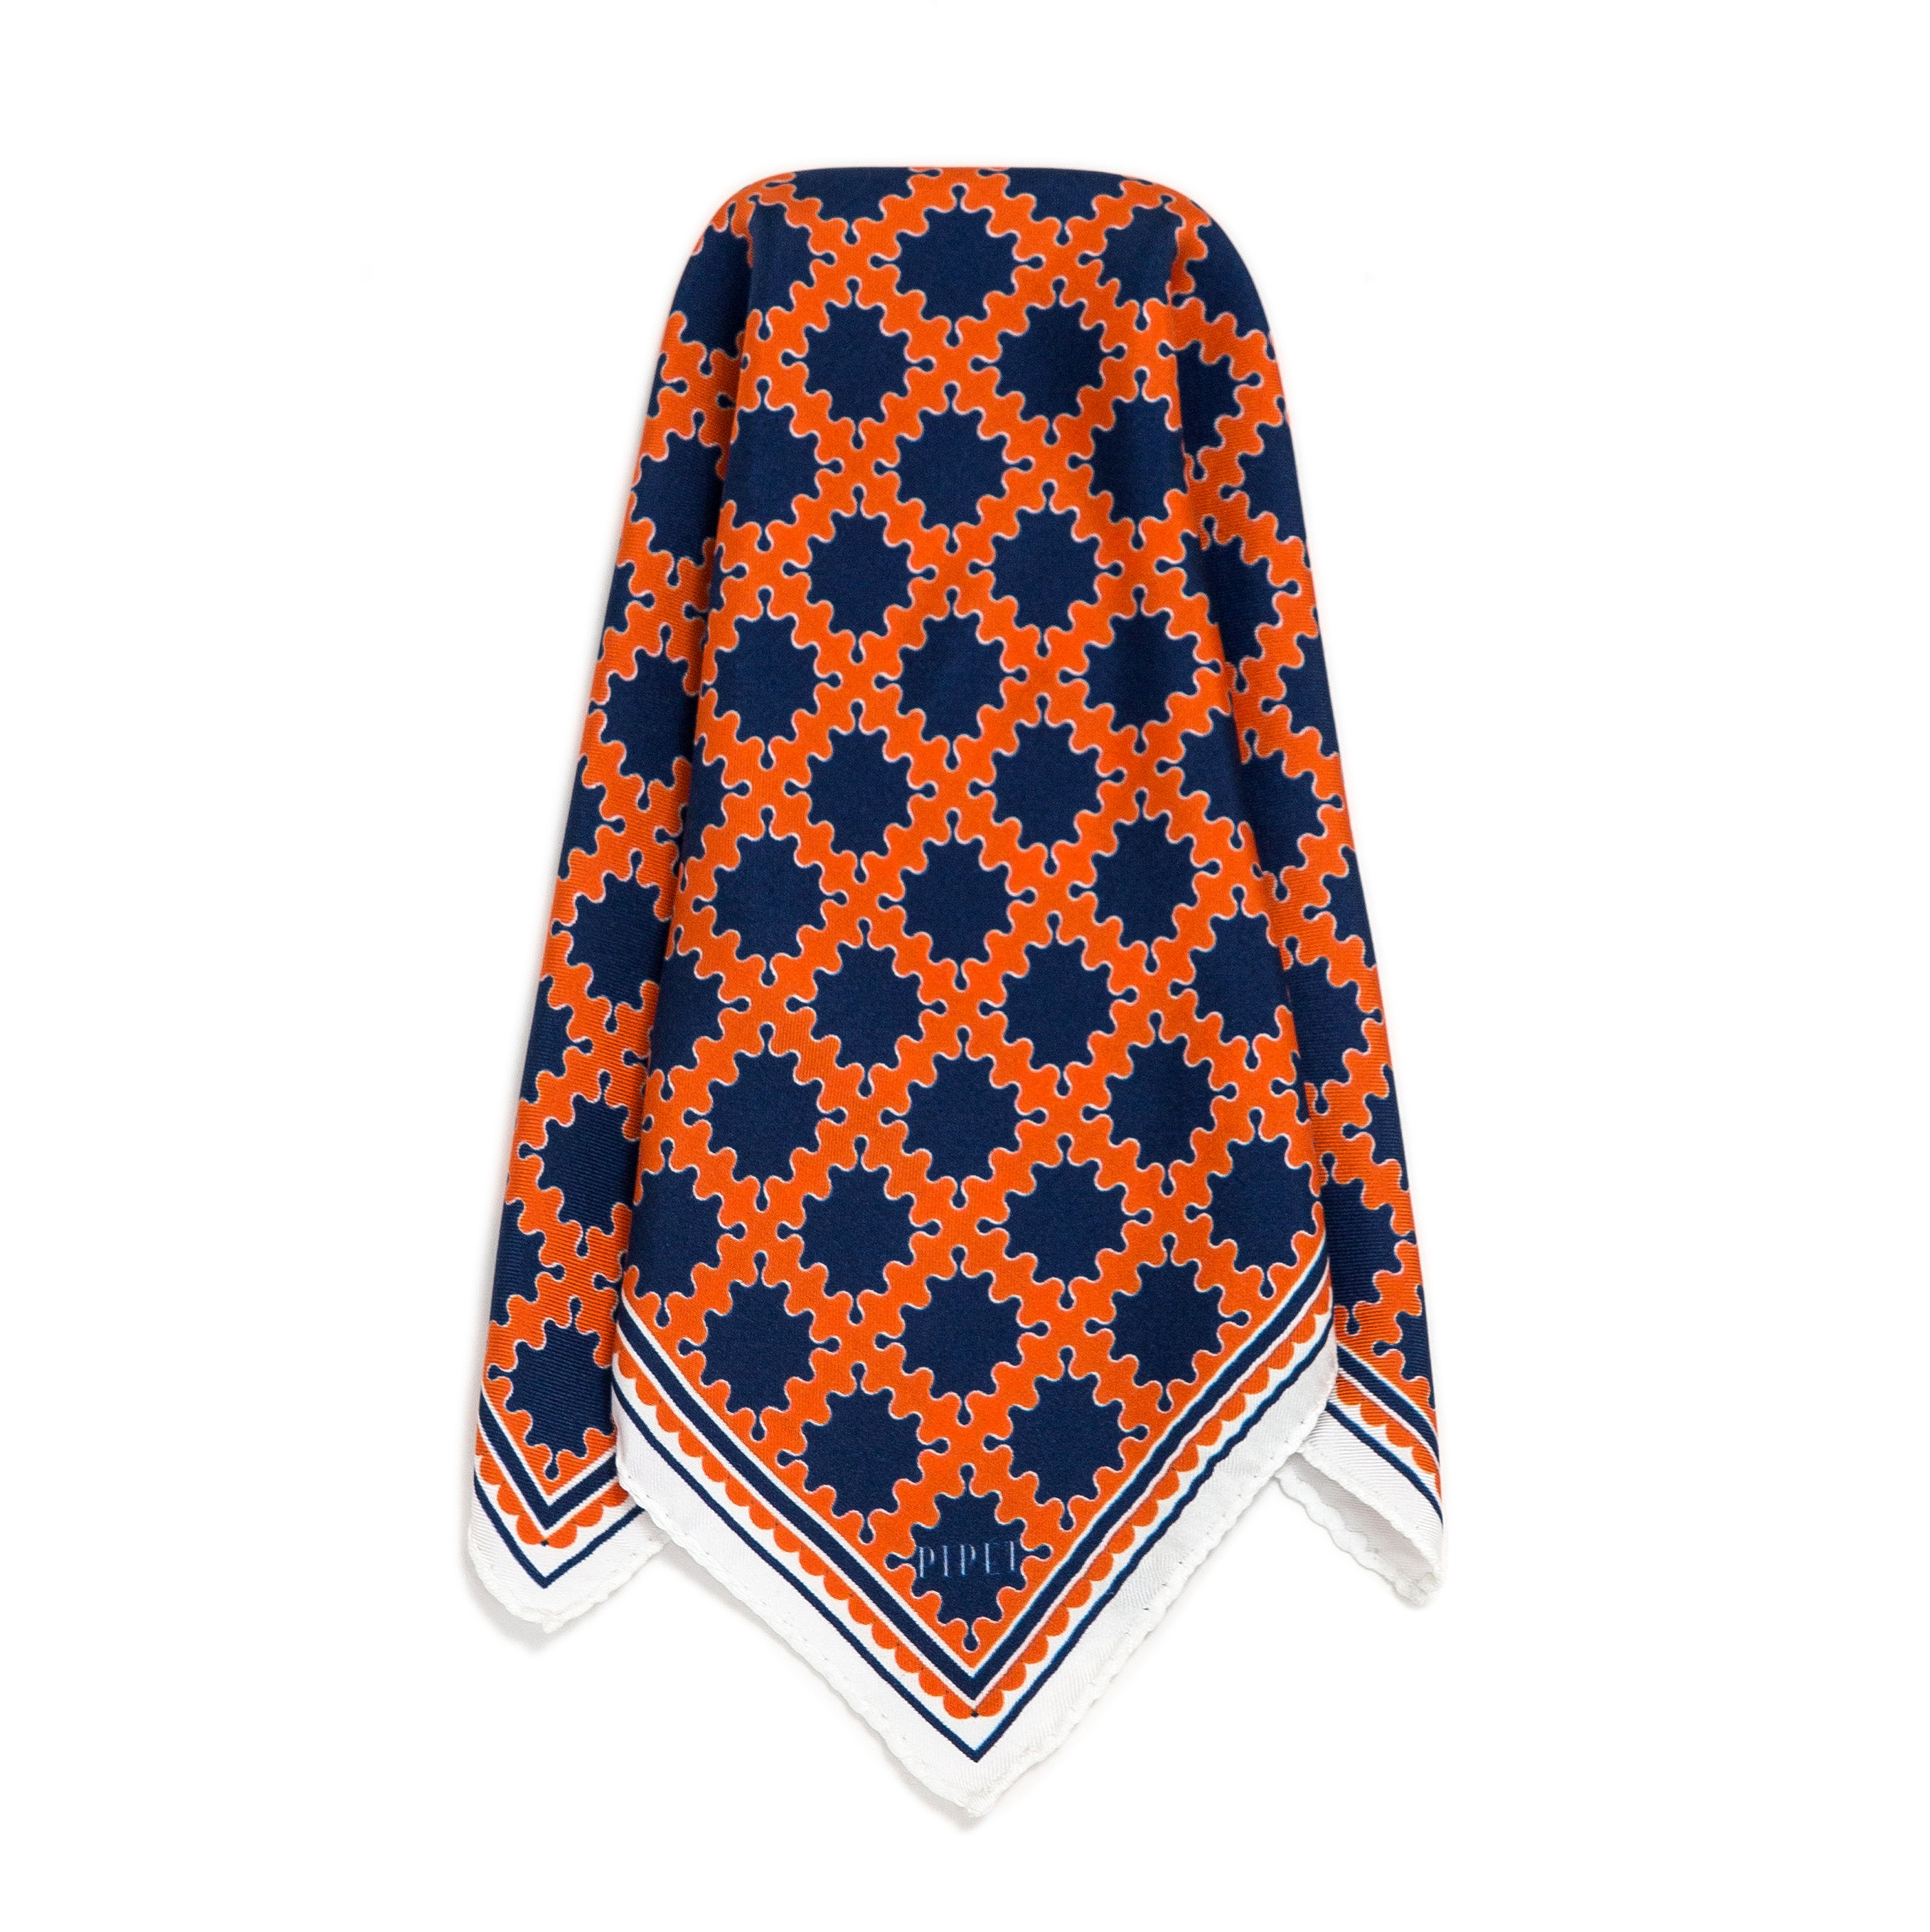 ©2017PIPETDESIGN Barbican Pocket Square Orange White SQ WHT HR.jpg